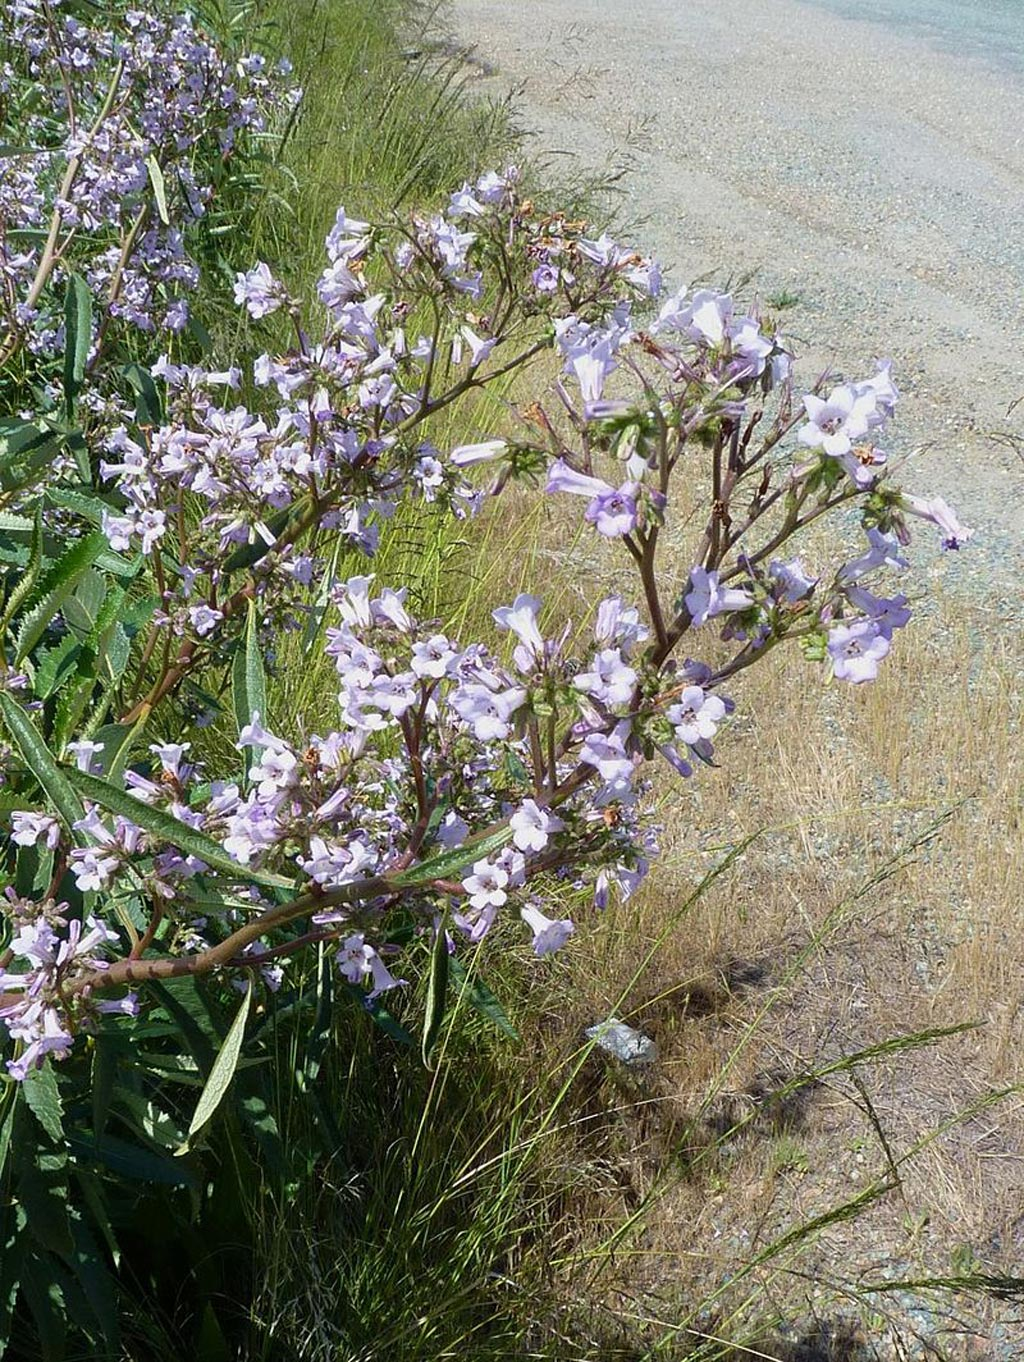 Image: Yerba Santa growing on roadside in California, USA (Photo courtesy of Wikimedia Commons).